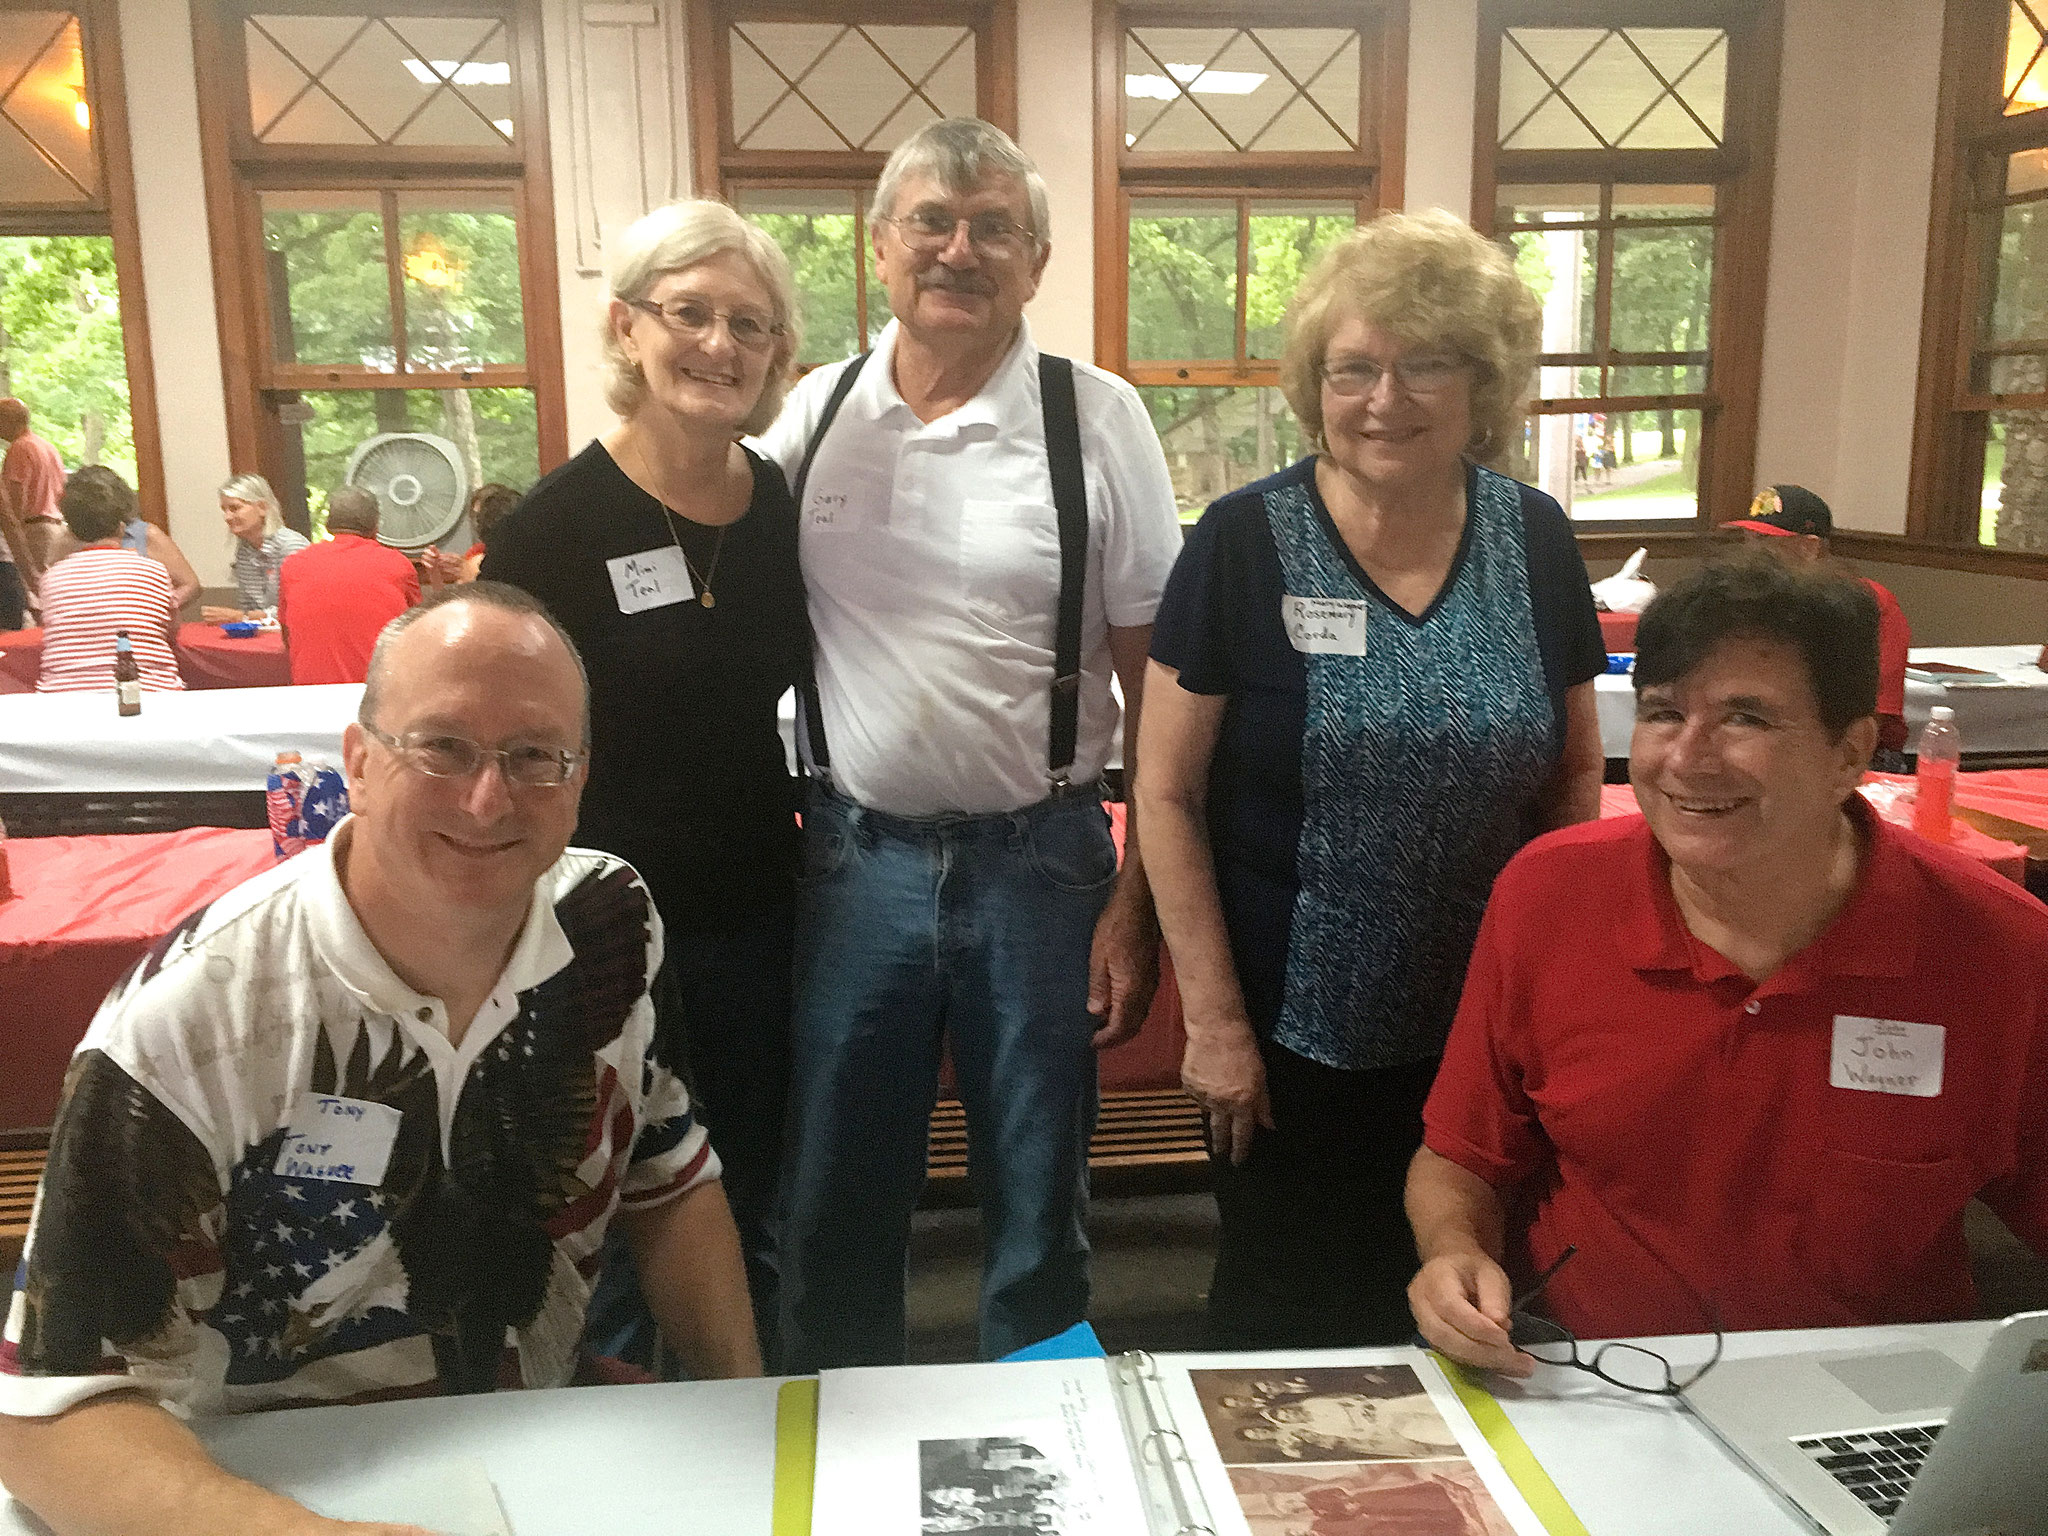 Tony Wagner, Marie 'Mimi' & Gary Teal, Rosemary Corda, and John Wagner.    Mimi, Gary, and Rosemary are grandchildren of August and Mary (Wagner) Krogman.